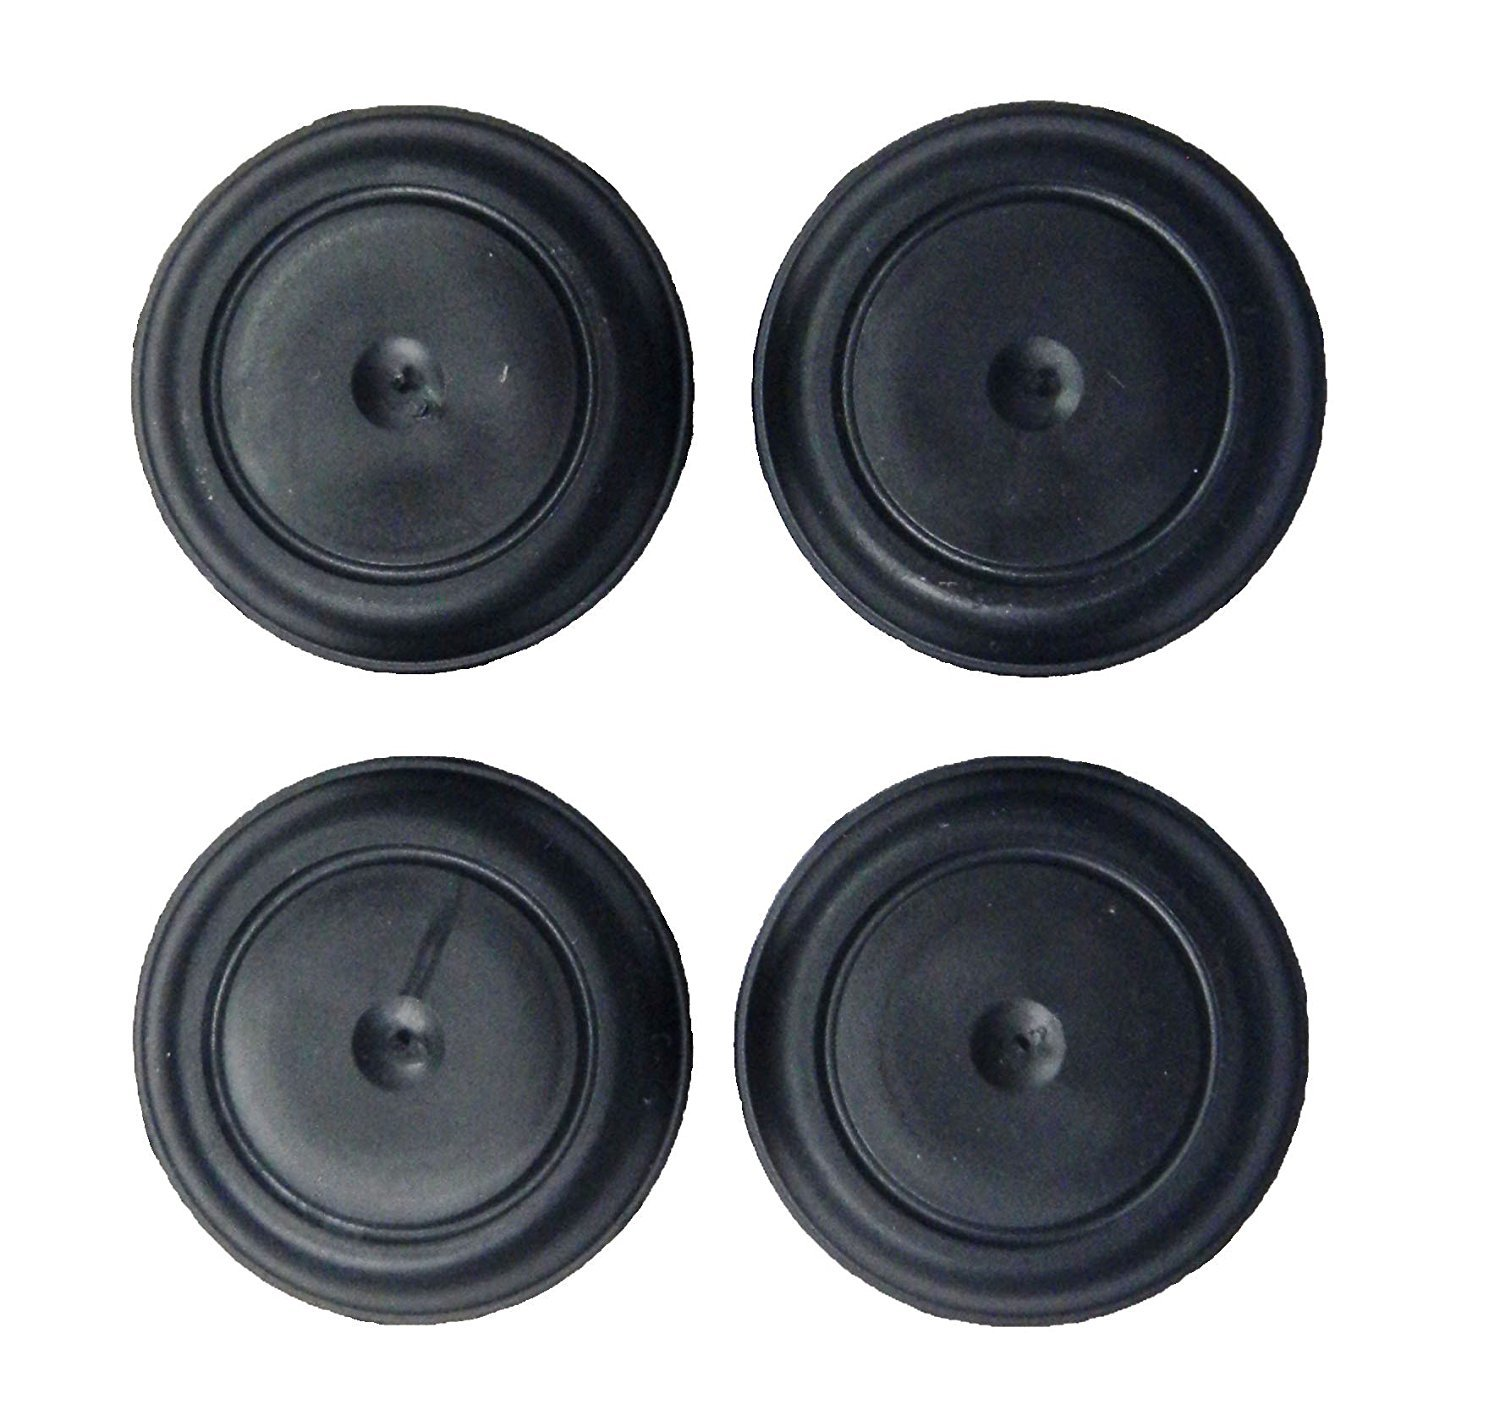 SB Distribution Ltd. (Set of 4) Rubber Body Floor Pan Drain Ergonomic Button Plugs for Jeep Wrangler TJ 1998 to 2006 Models OEM 55177482AA | by SBD